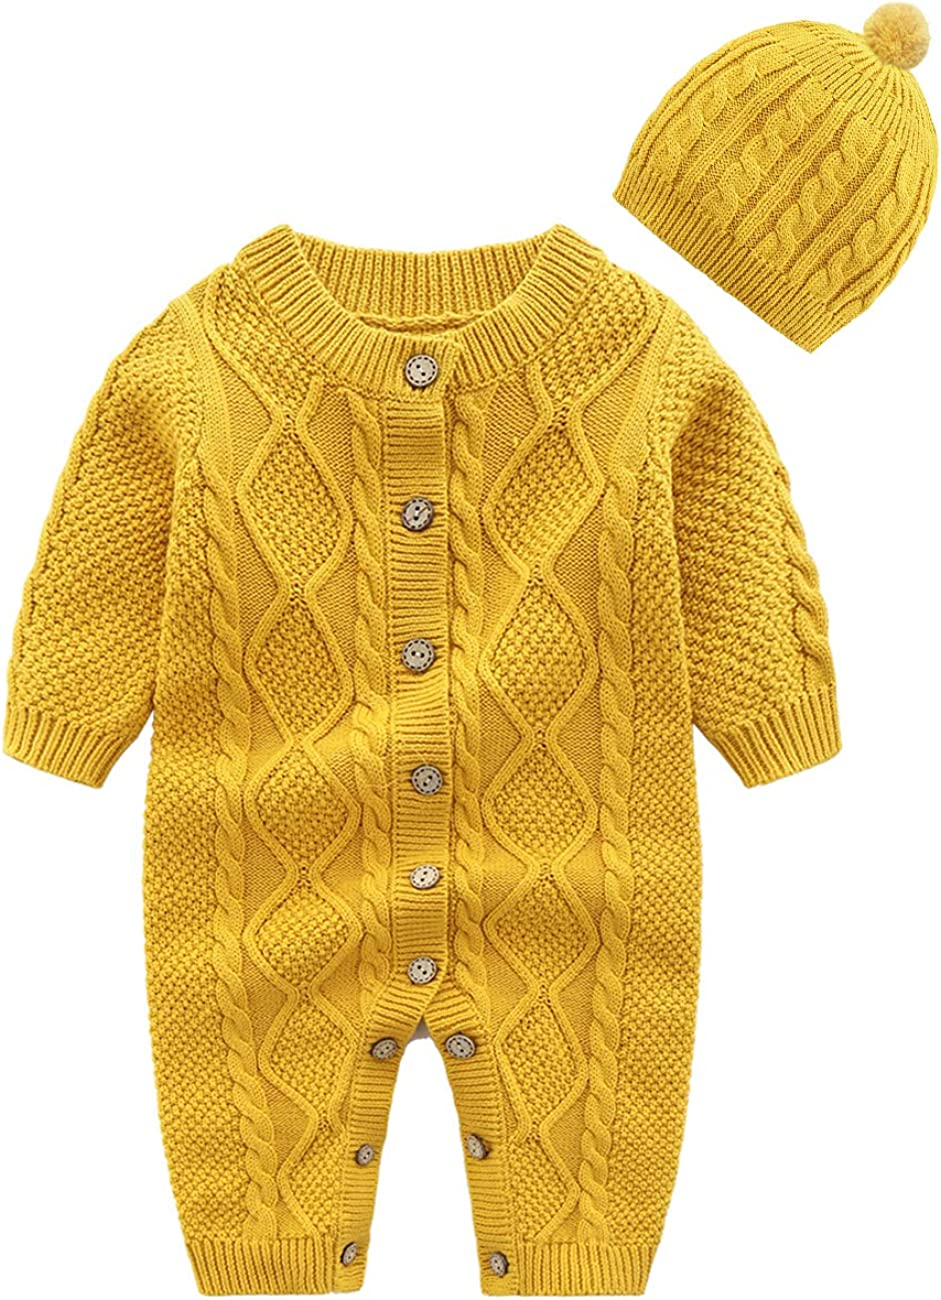 JunNeng Baby Newborn Cotton Knitted Sweater Romper Longsleeve Outfit with Warm Hat Set